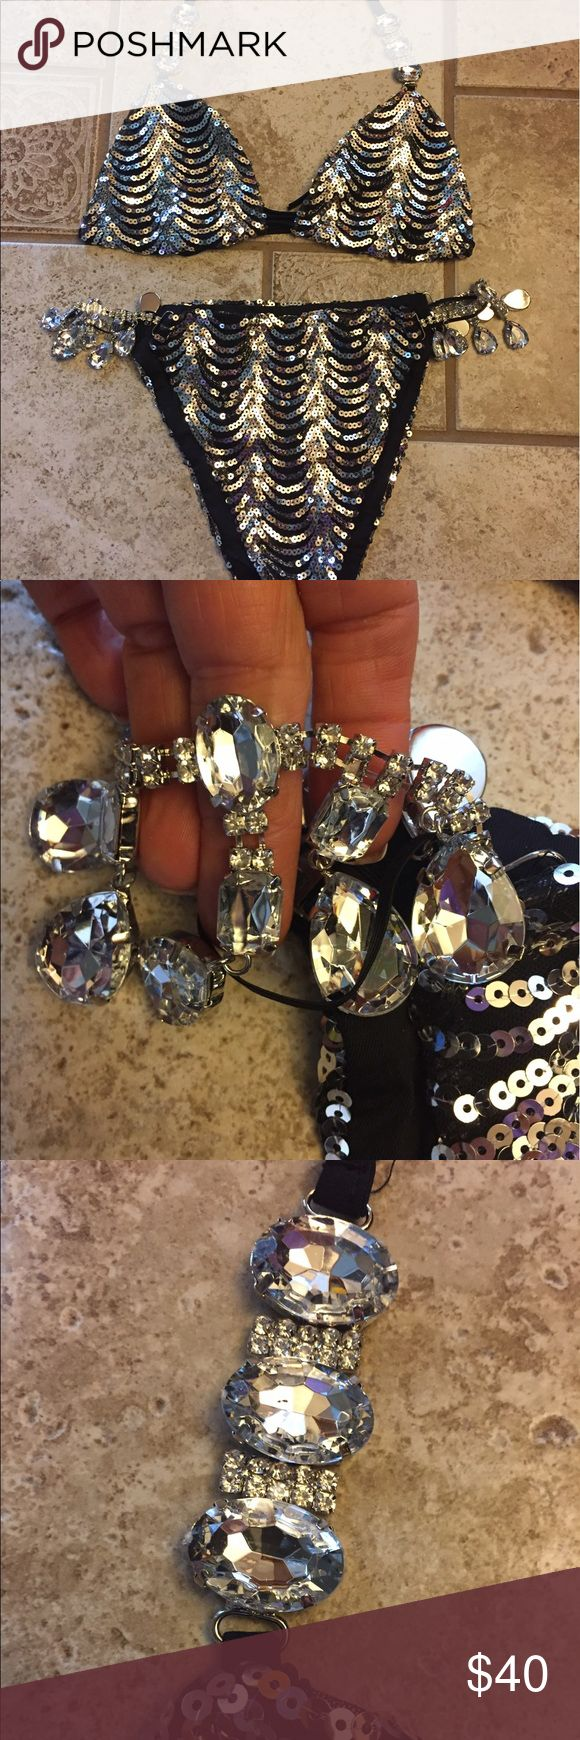 New rhinestone and sequin bikini set Brand new ordered online. Came wrapped in plastic bag. No brand tag.  Black with silver sequins and nice big rhinestone accents for the sides of the bikini bottoms and matching stones on the top.   I bought this for another Mexico trip that didn't take place. Very nice / sexy set. Both pieces ate medium and smoke free Swim Bikinis